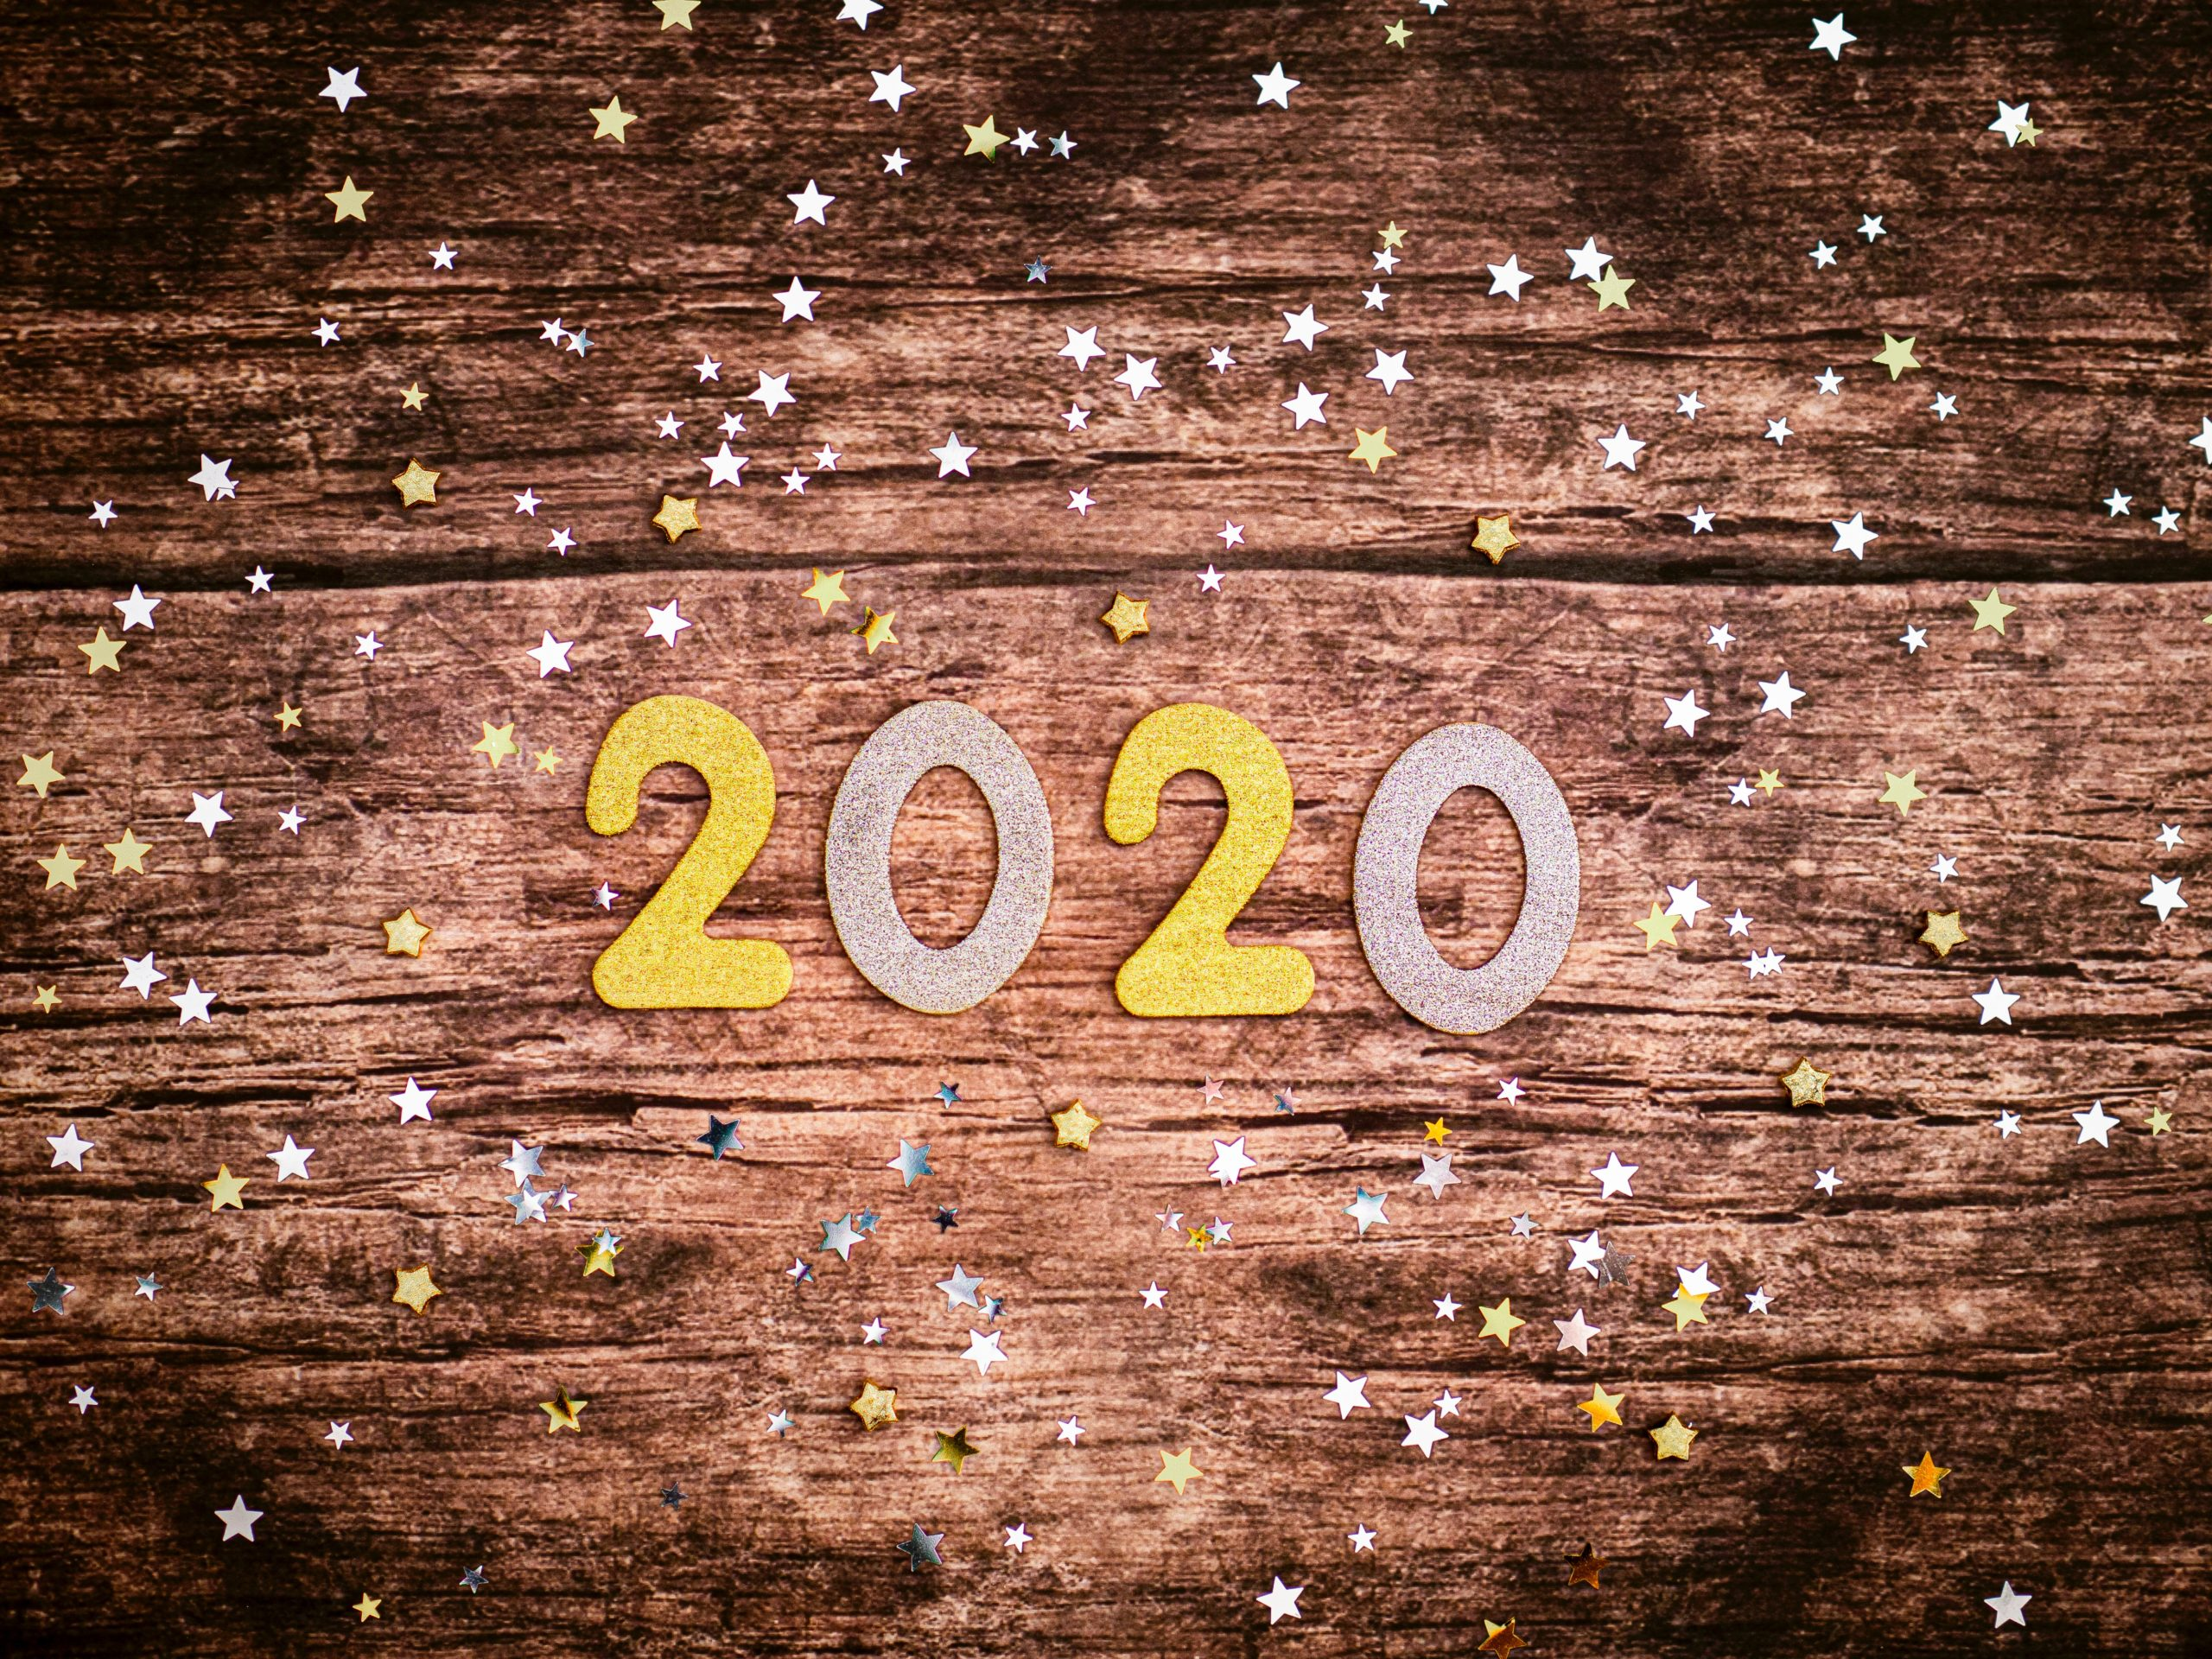 The numbers 2020 in glittery numbers surrounded by gold and silver stars.